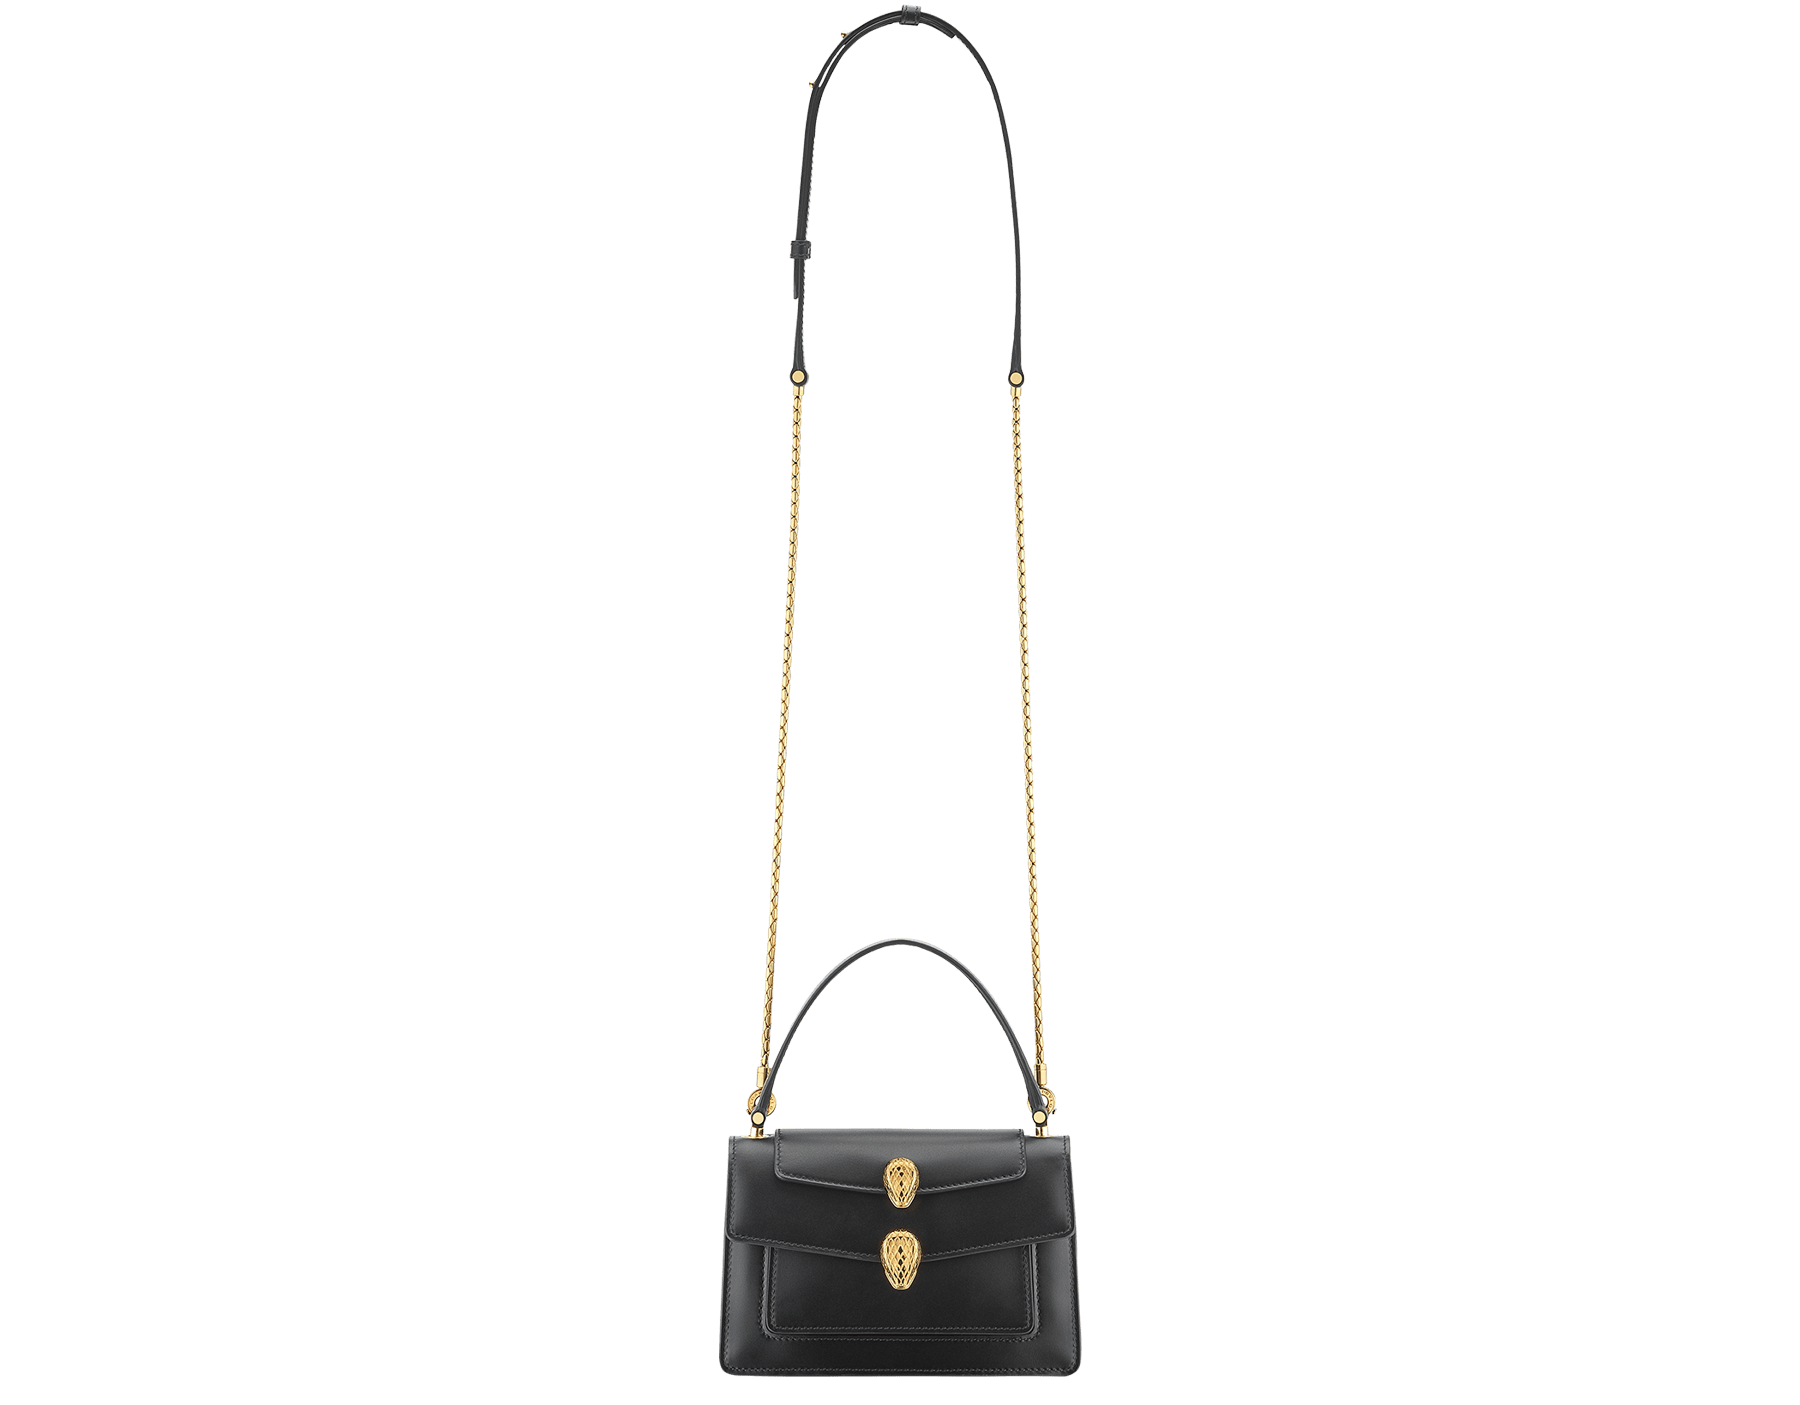 """Alexander Wang x Bvlgari"" belt bag in smooth peach calf leather. New double Serpenti head closure in antique gold plated brass with tempting red enamel eyes. Limited edition. SFW-001-1029S image 6"